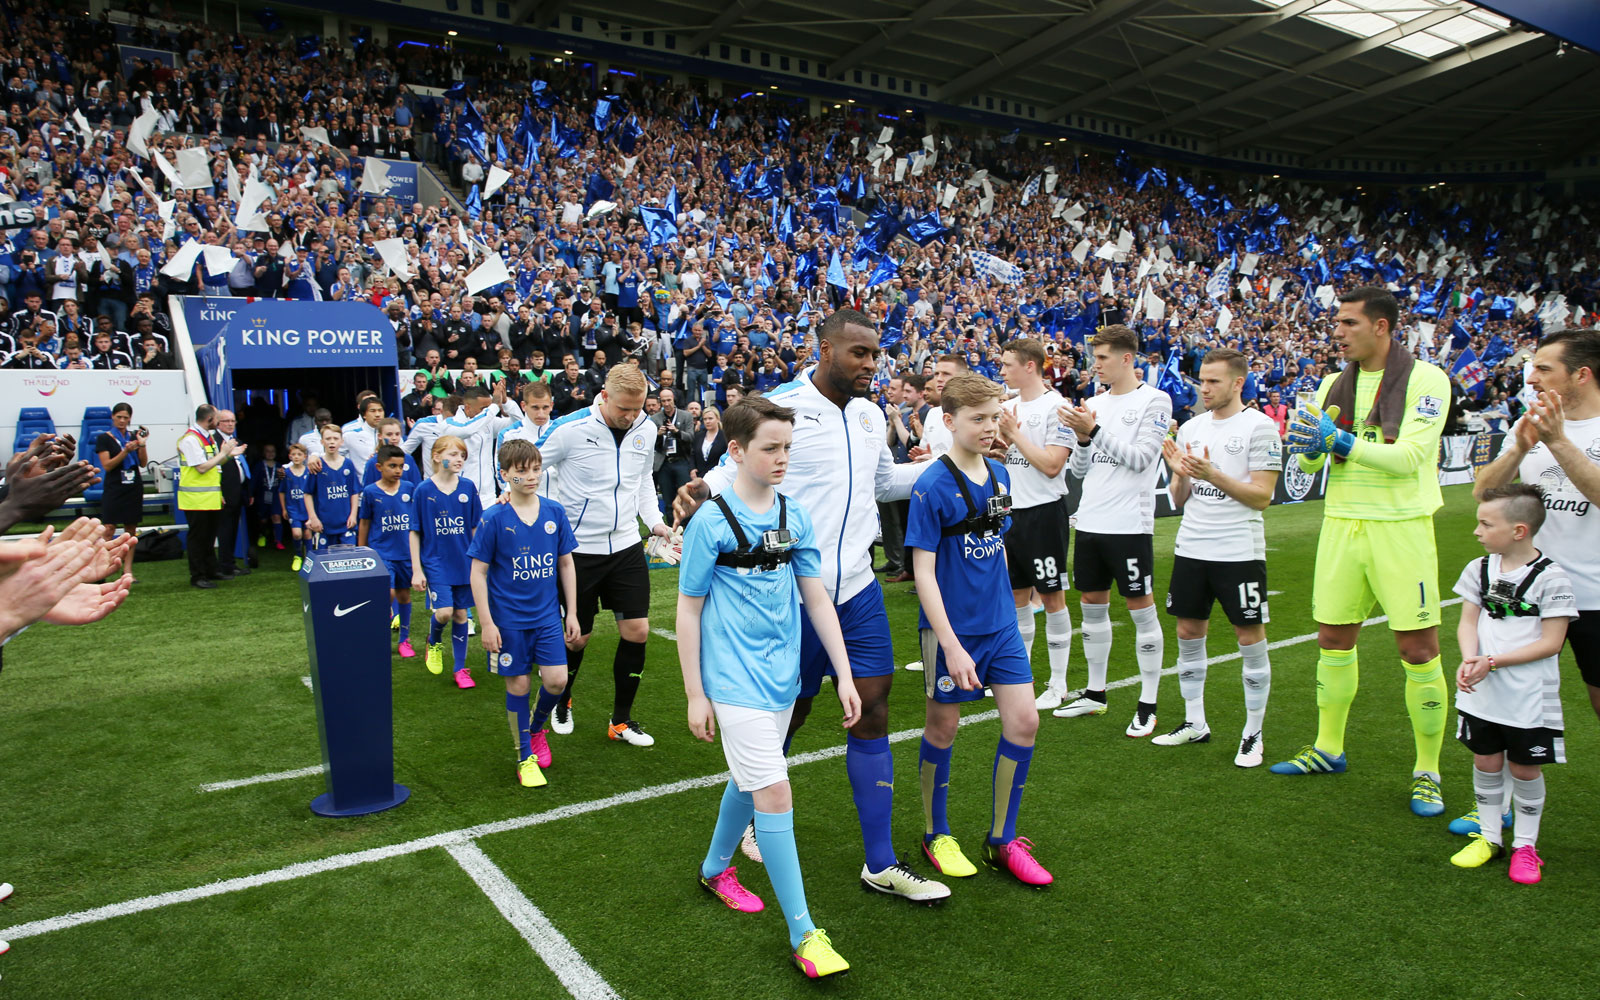 Everton provides a guard of honor for Leicester City ahead of their match.